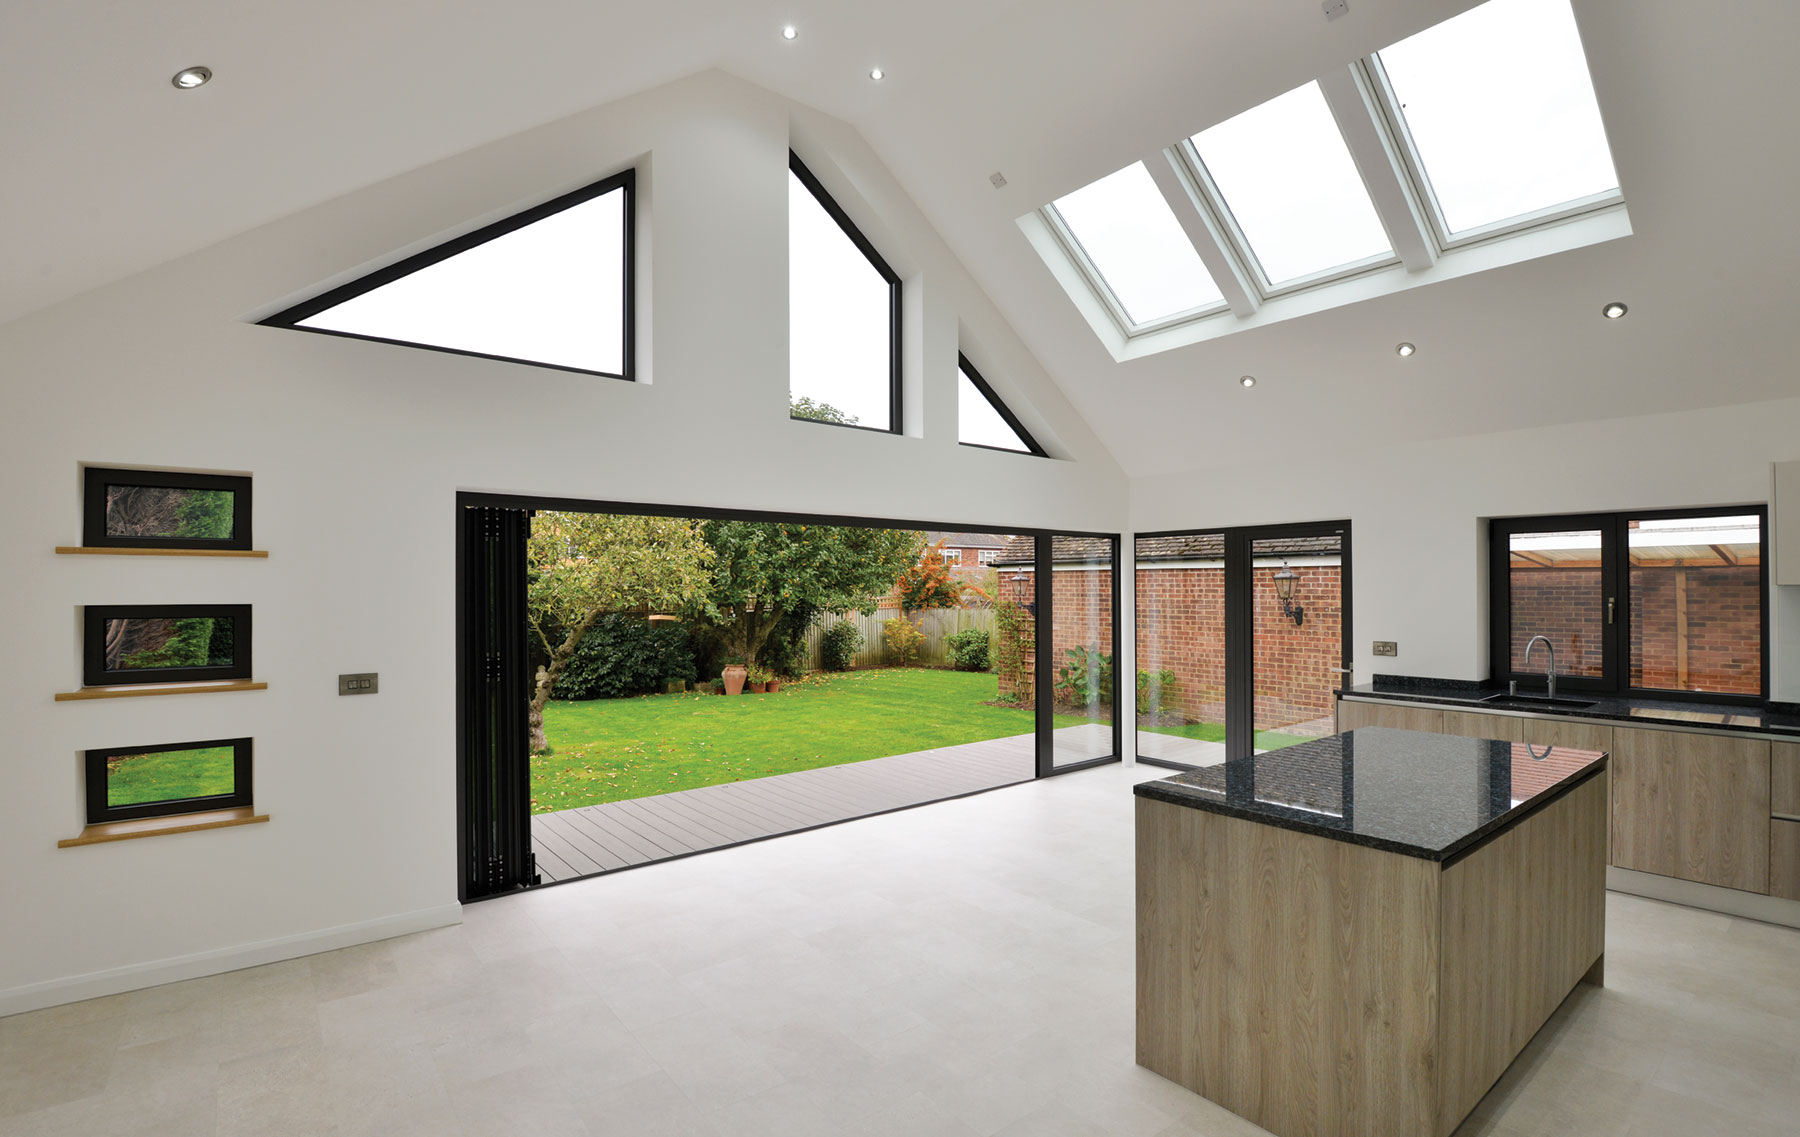 Bifolding Aluminium doors with rooflights and bespoke windows for bungalow extension in essexLIDING DOORS AND BESPOKE WINDOWS FOR EXTENSION